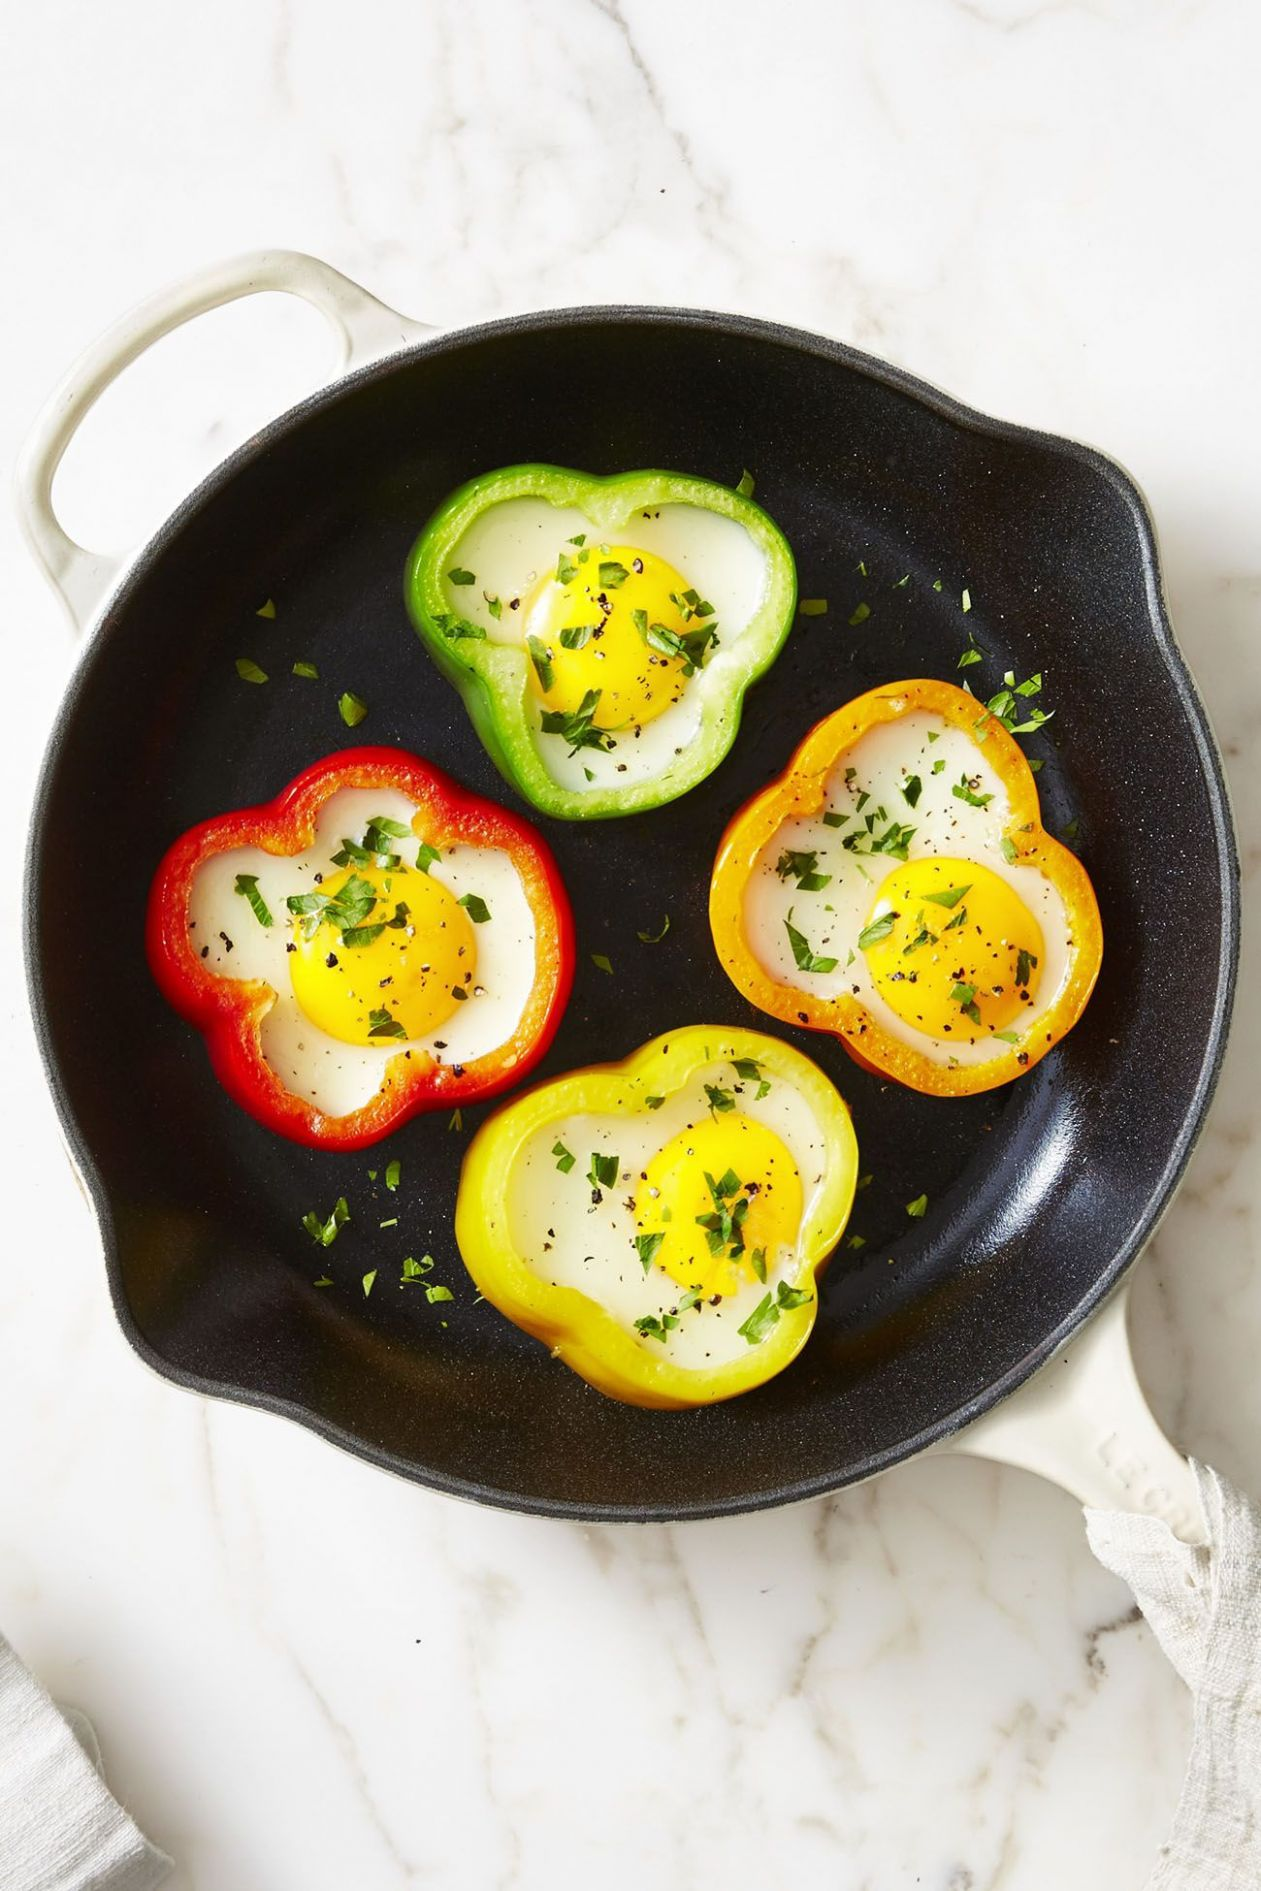 8+ Easy Egg Recipes - Ways to Cook Eggs for Breakfast